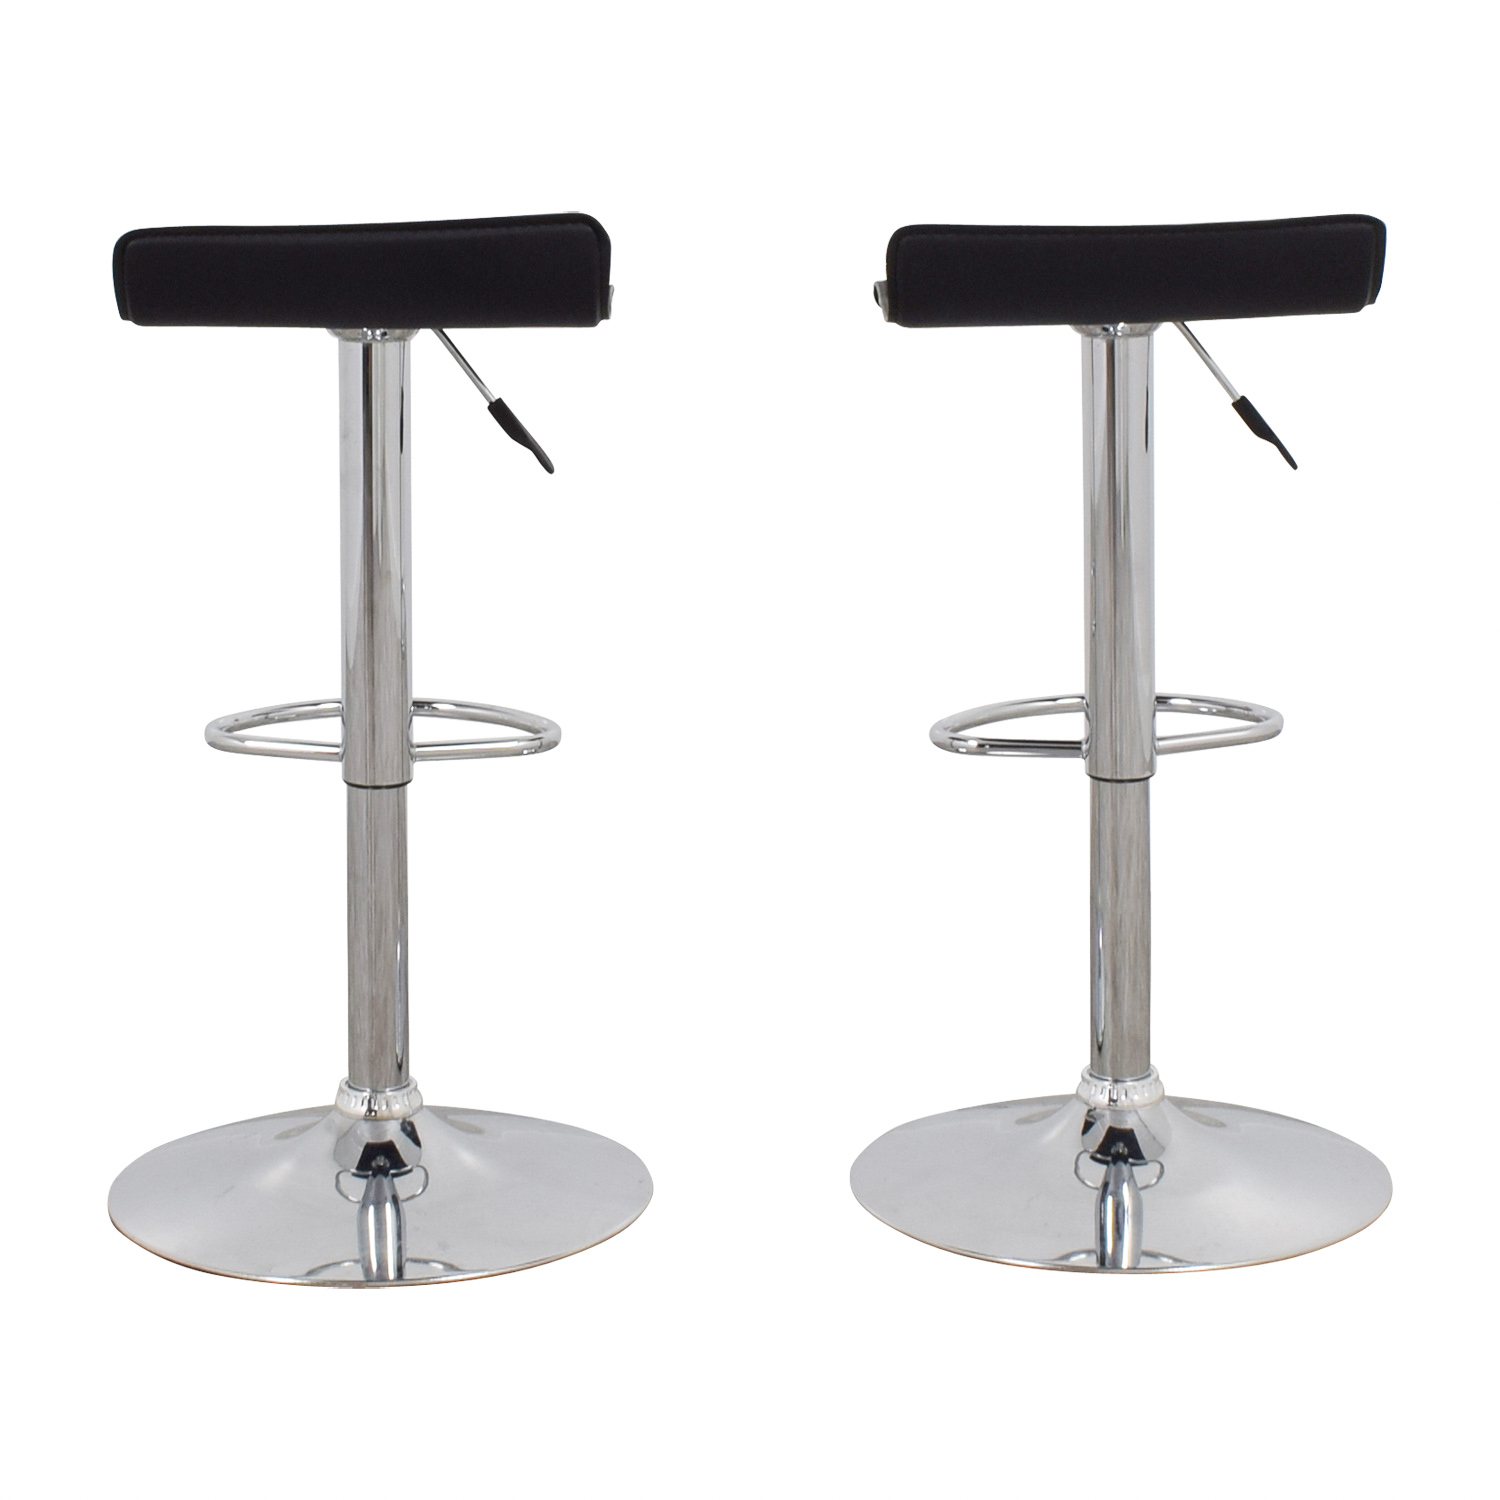 Black Bar Stools price